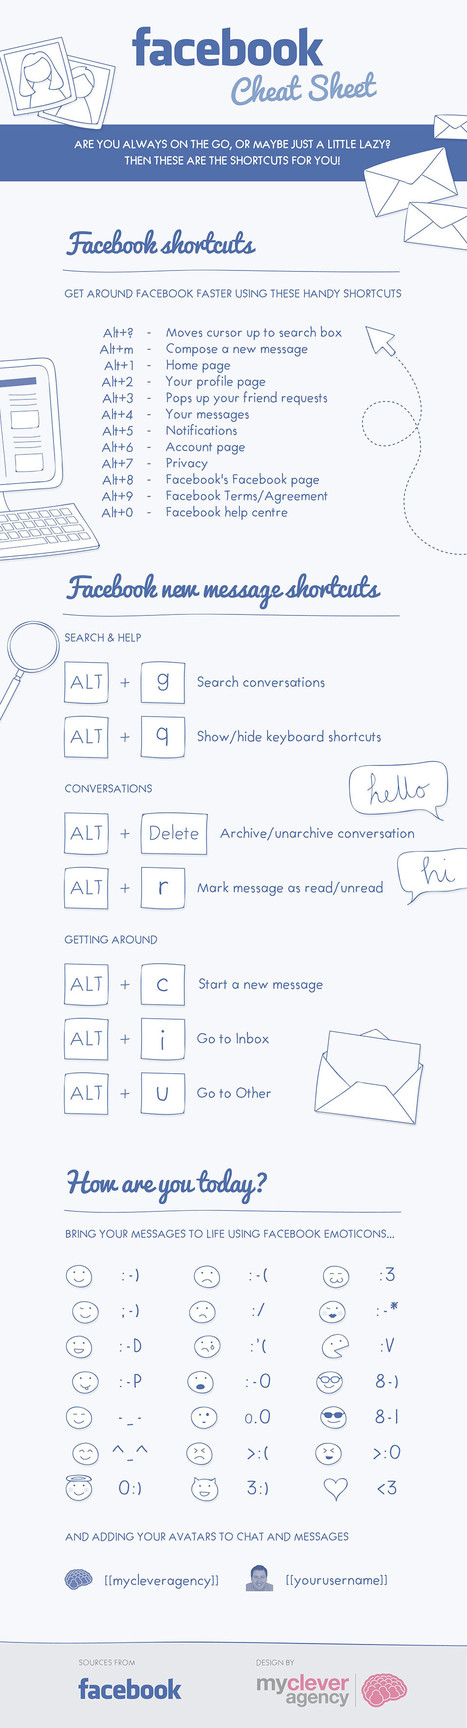 "Facebook Cheat Sheet [INFOGRAPHIC] | ""#Google+, +1, Facebook, Twitter, Scoop, Foursquare, Empire Avenue, Klout and more"" 